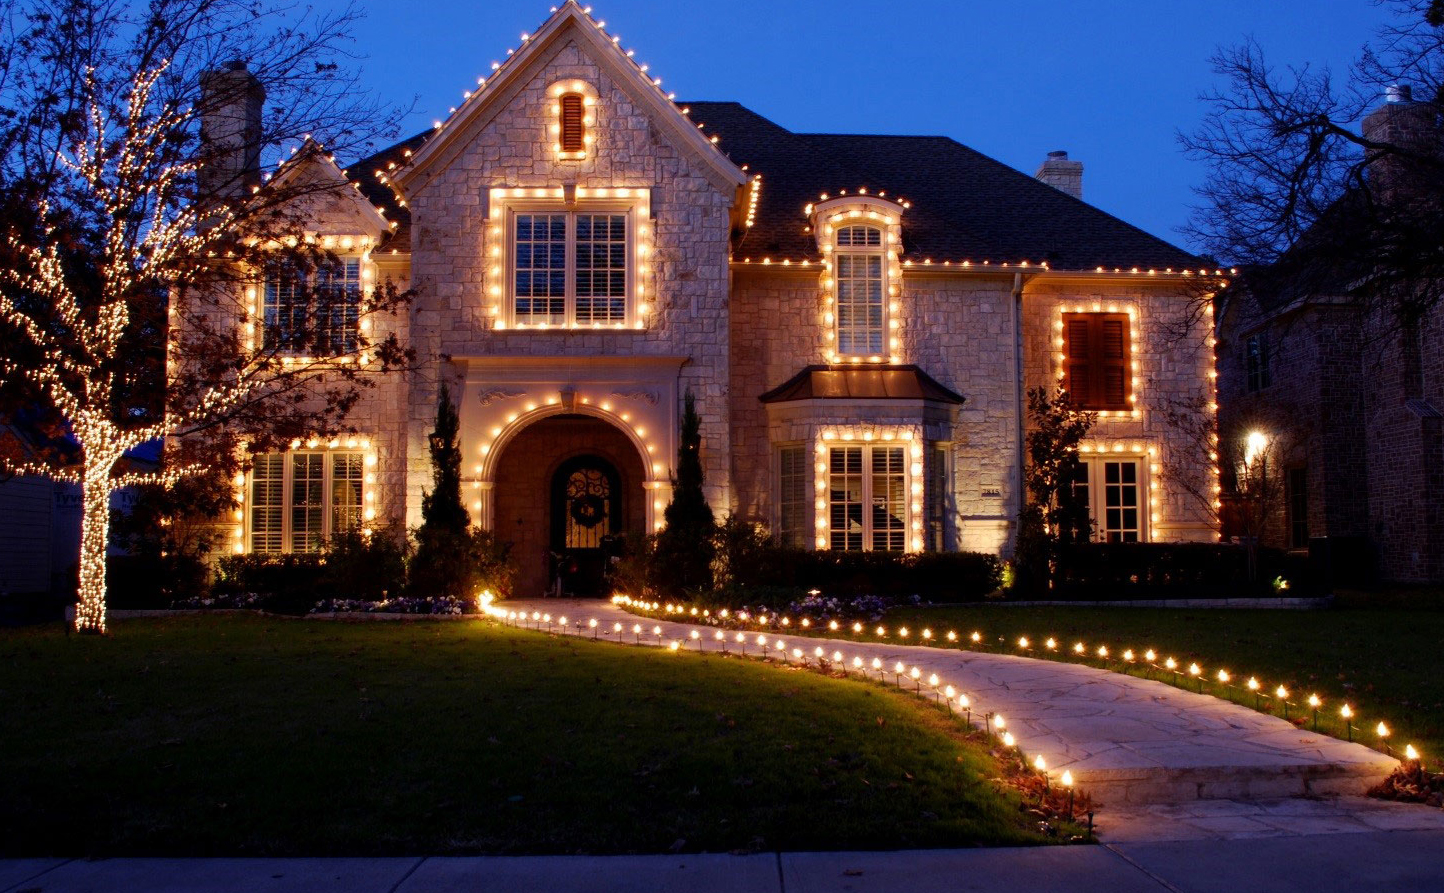 holiday lighting installation near me